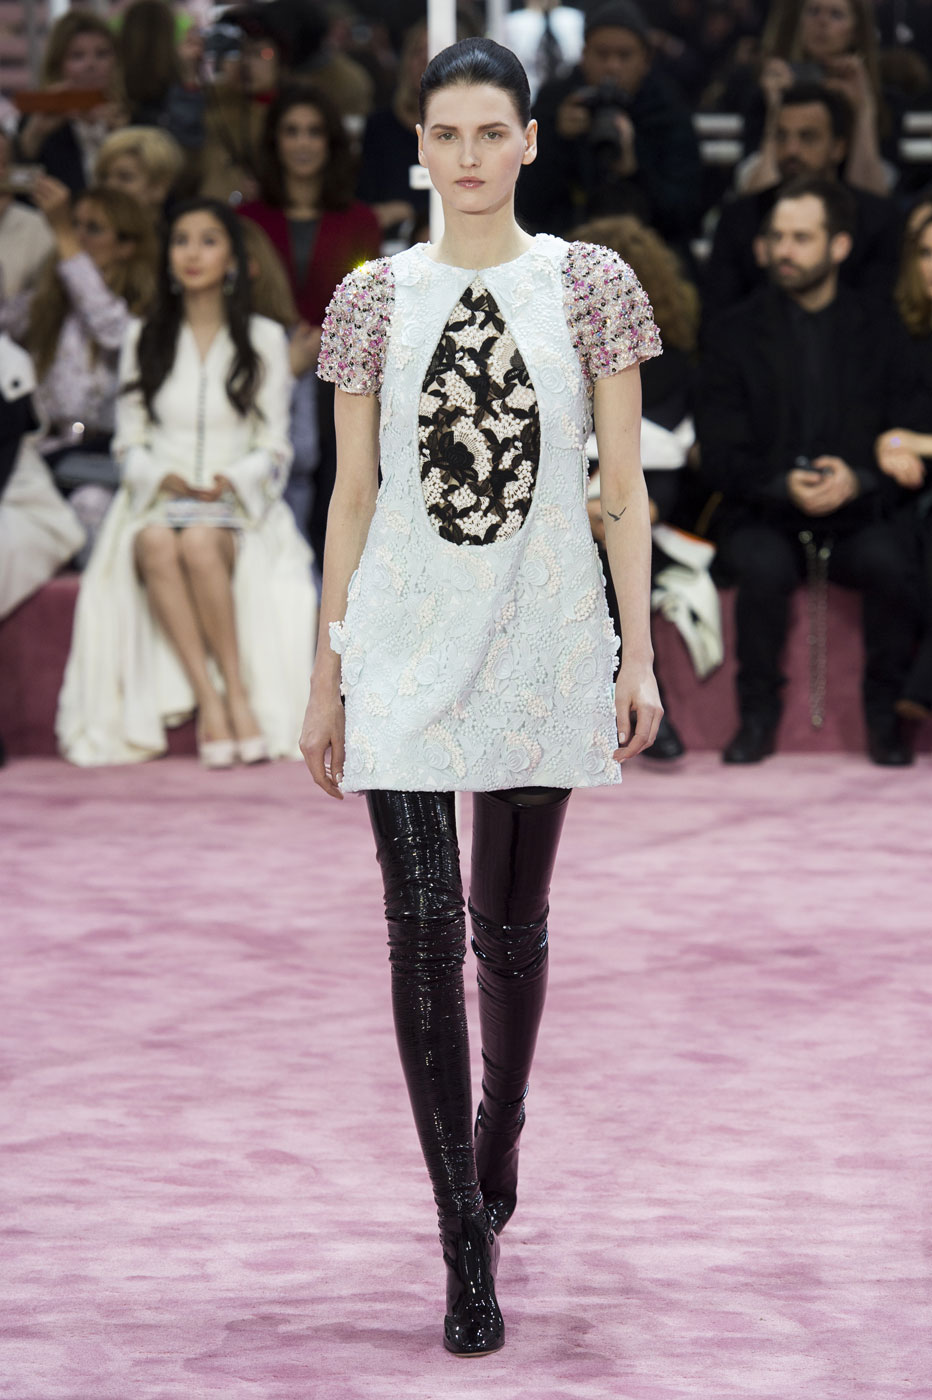 Christian-Dior-fashion-runway-show-haute-couture-paris-spring-summer-2015-the-impression-027